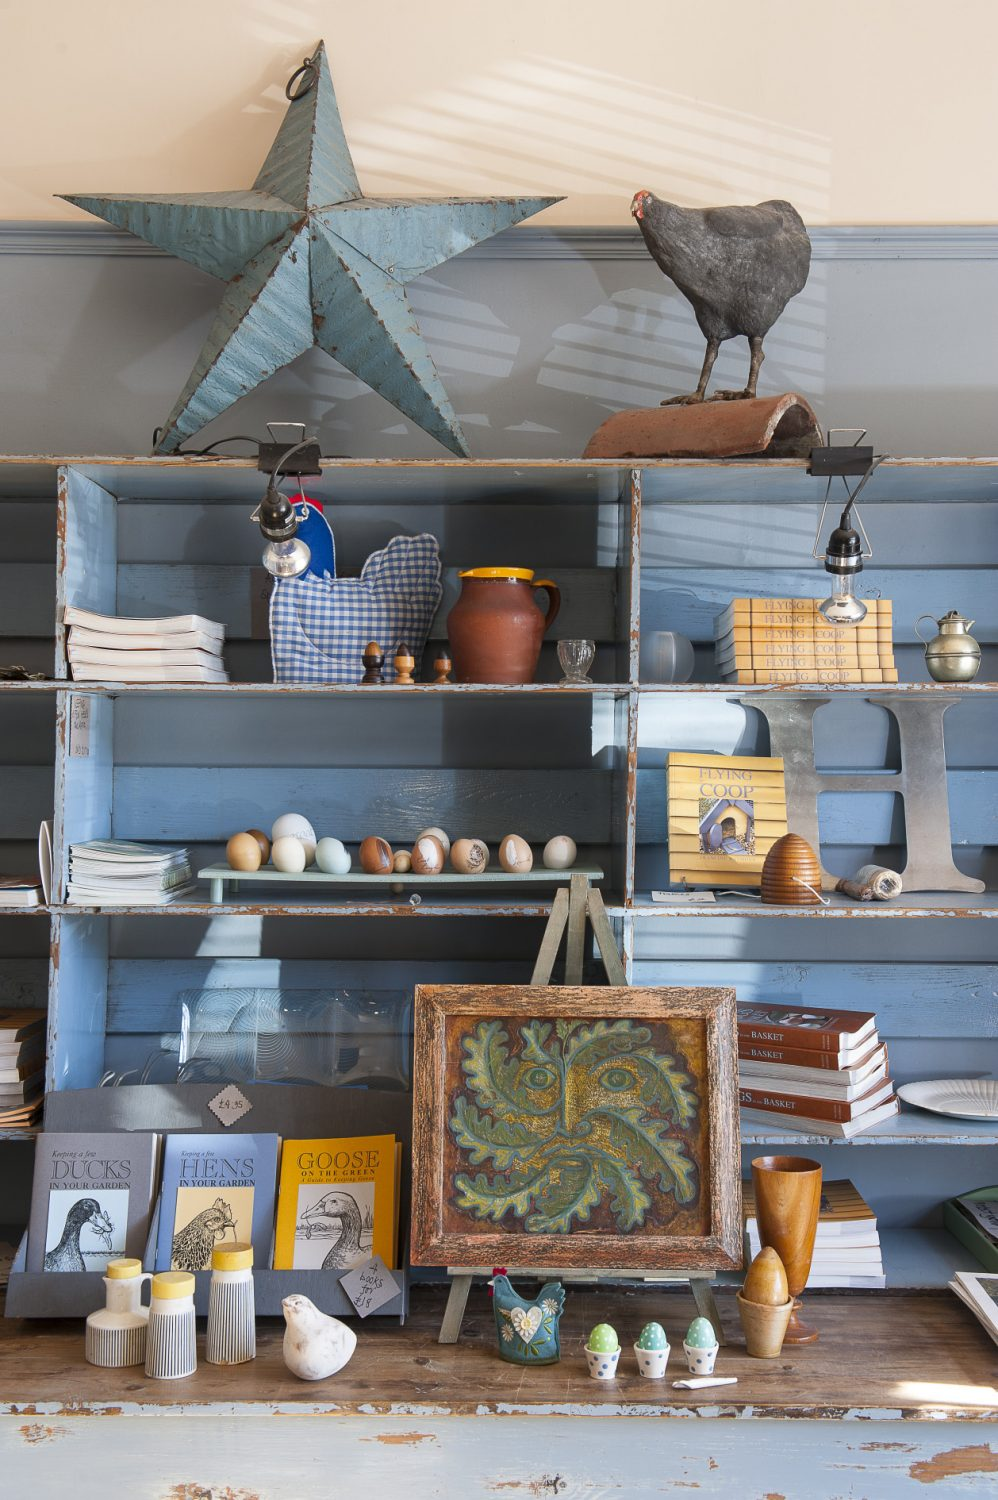 The office area turns into a pop-up shop before Christmas and in mid summer when Francine opens up her house and garden. A vast shelving unit, transported from Suffolk, displays Francine's range of books as well as decorative items and inspiring art and craft